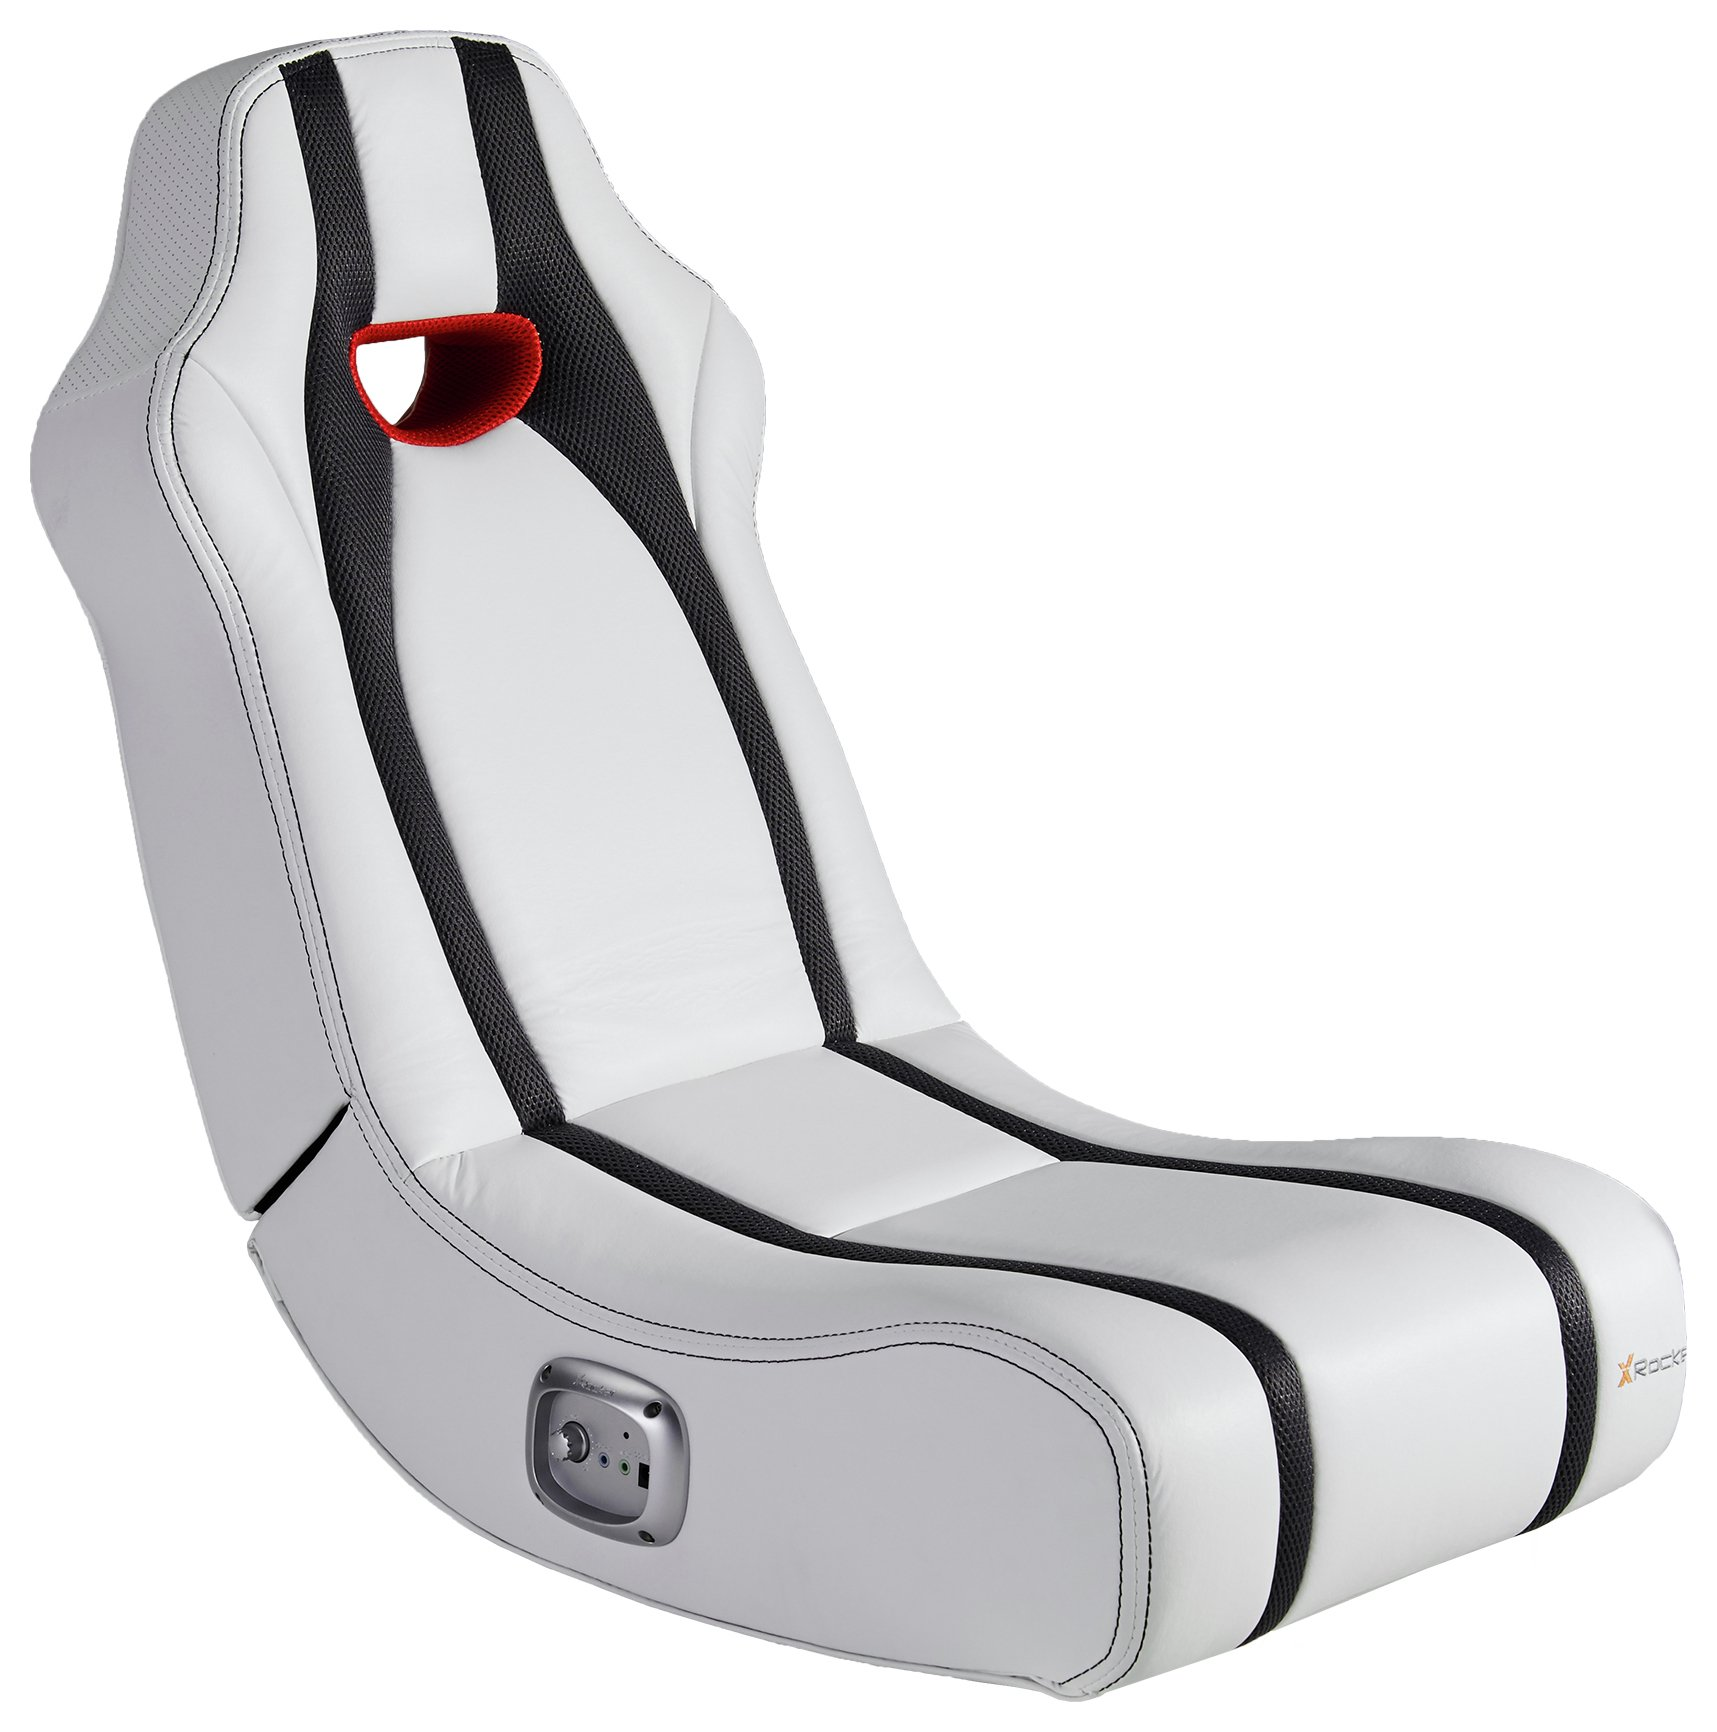 best gaming chair for ps4 steel wrestling x rocker spectre white and xbox one review